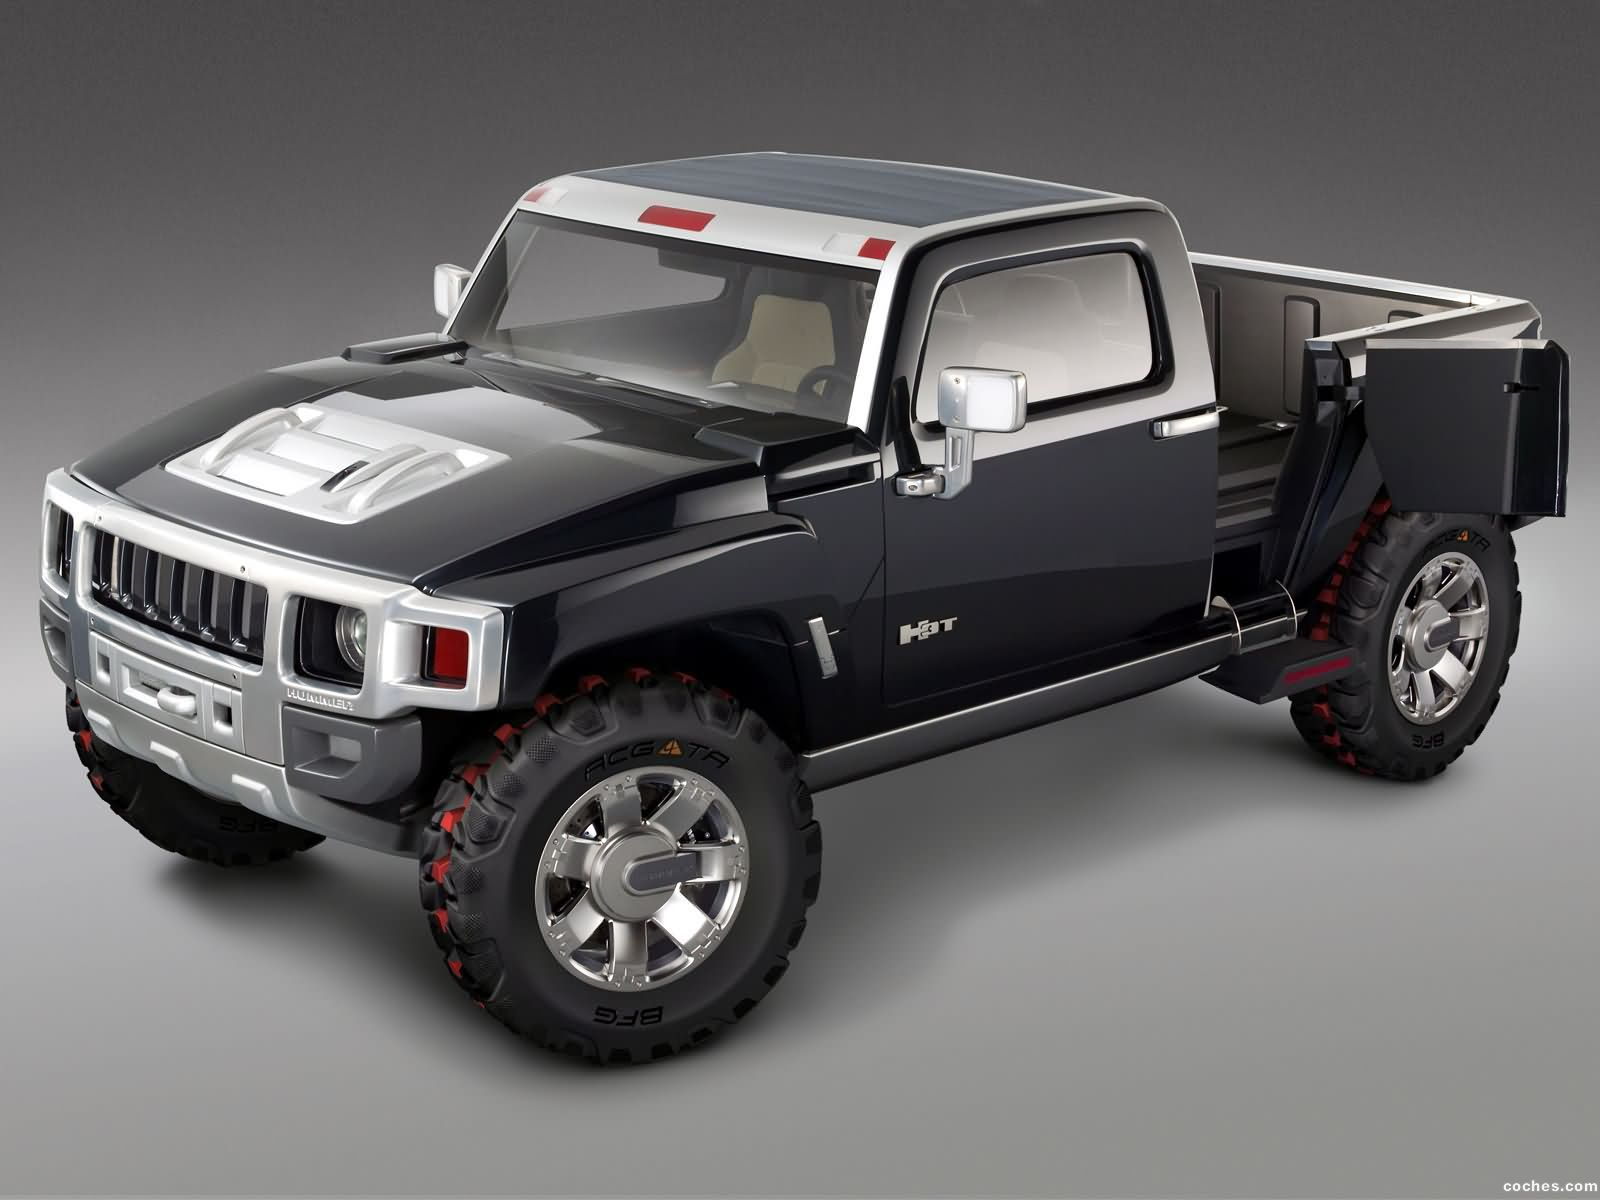 Hummer h2 car price in india 2017 16